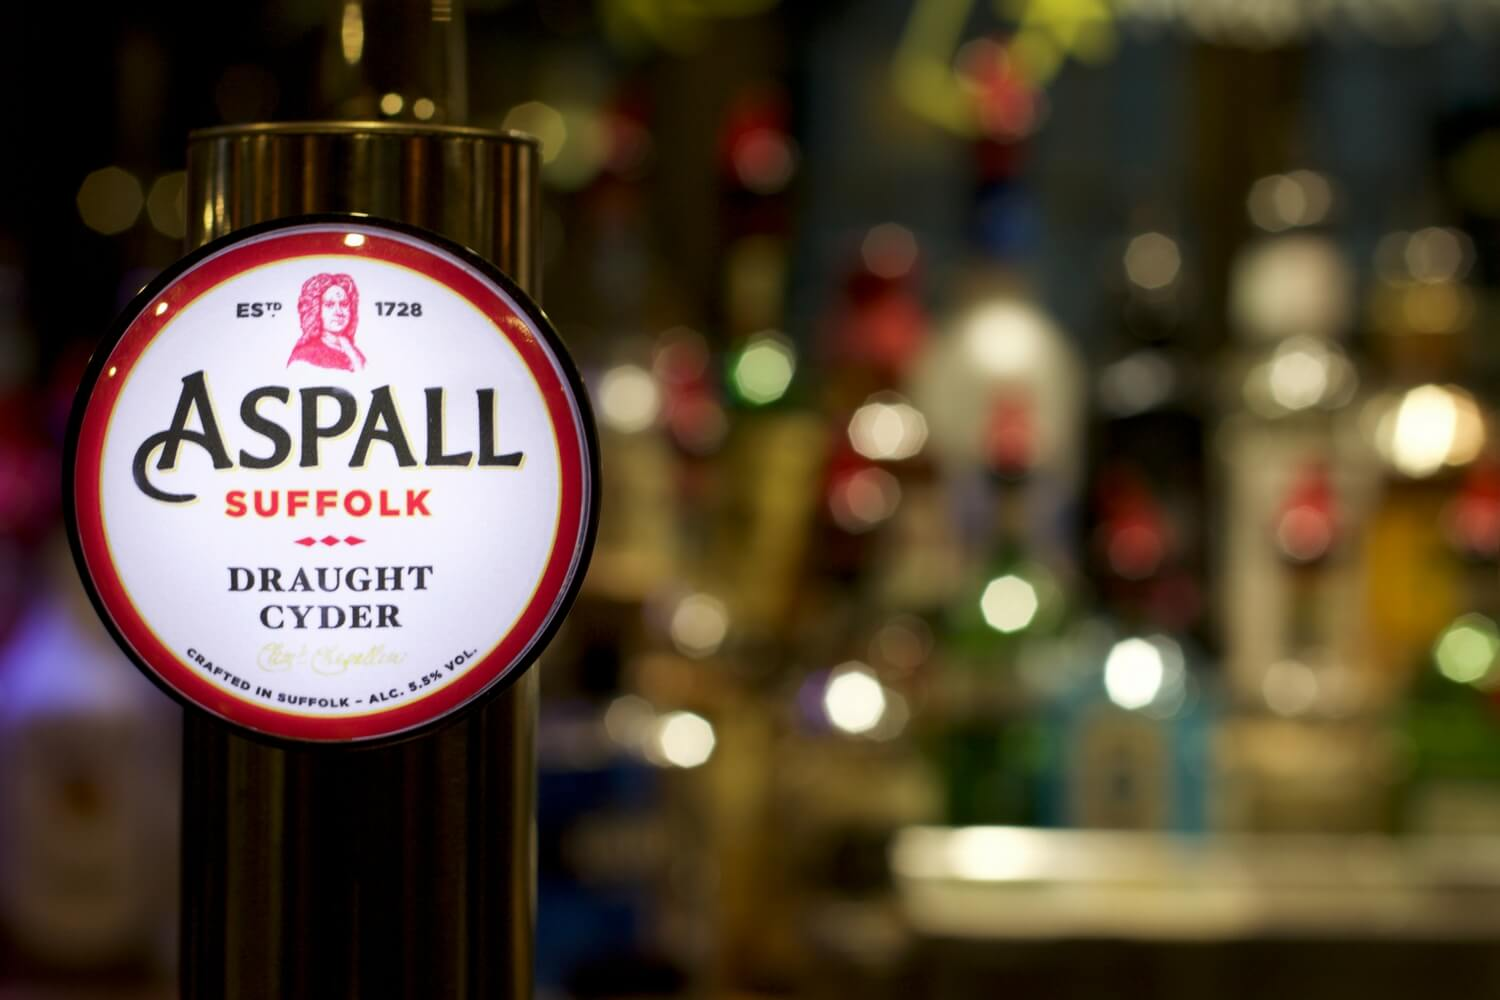 Aspall Draught Cider - The Purple Dog Pub Colchester